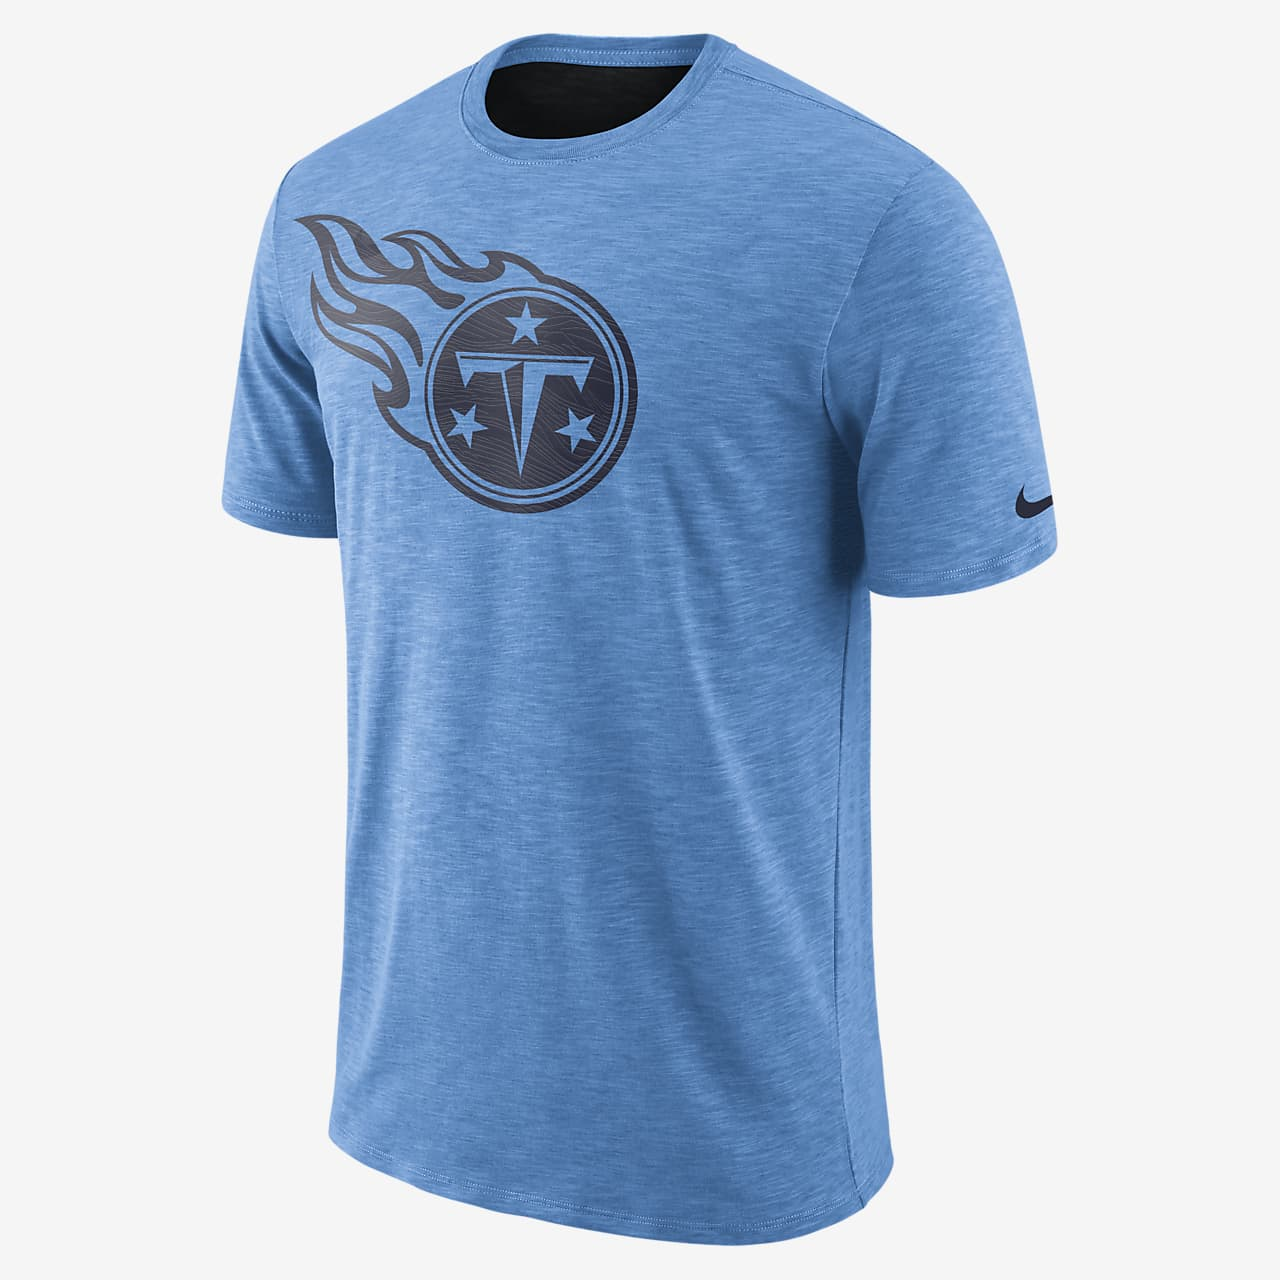 Nike Dri-FIT Legend On-Field (NFL Titans) férfipóló